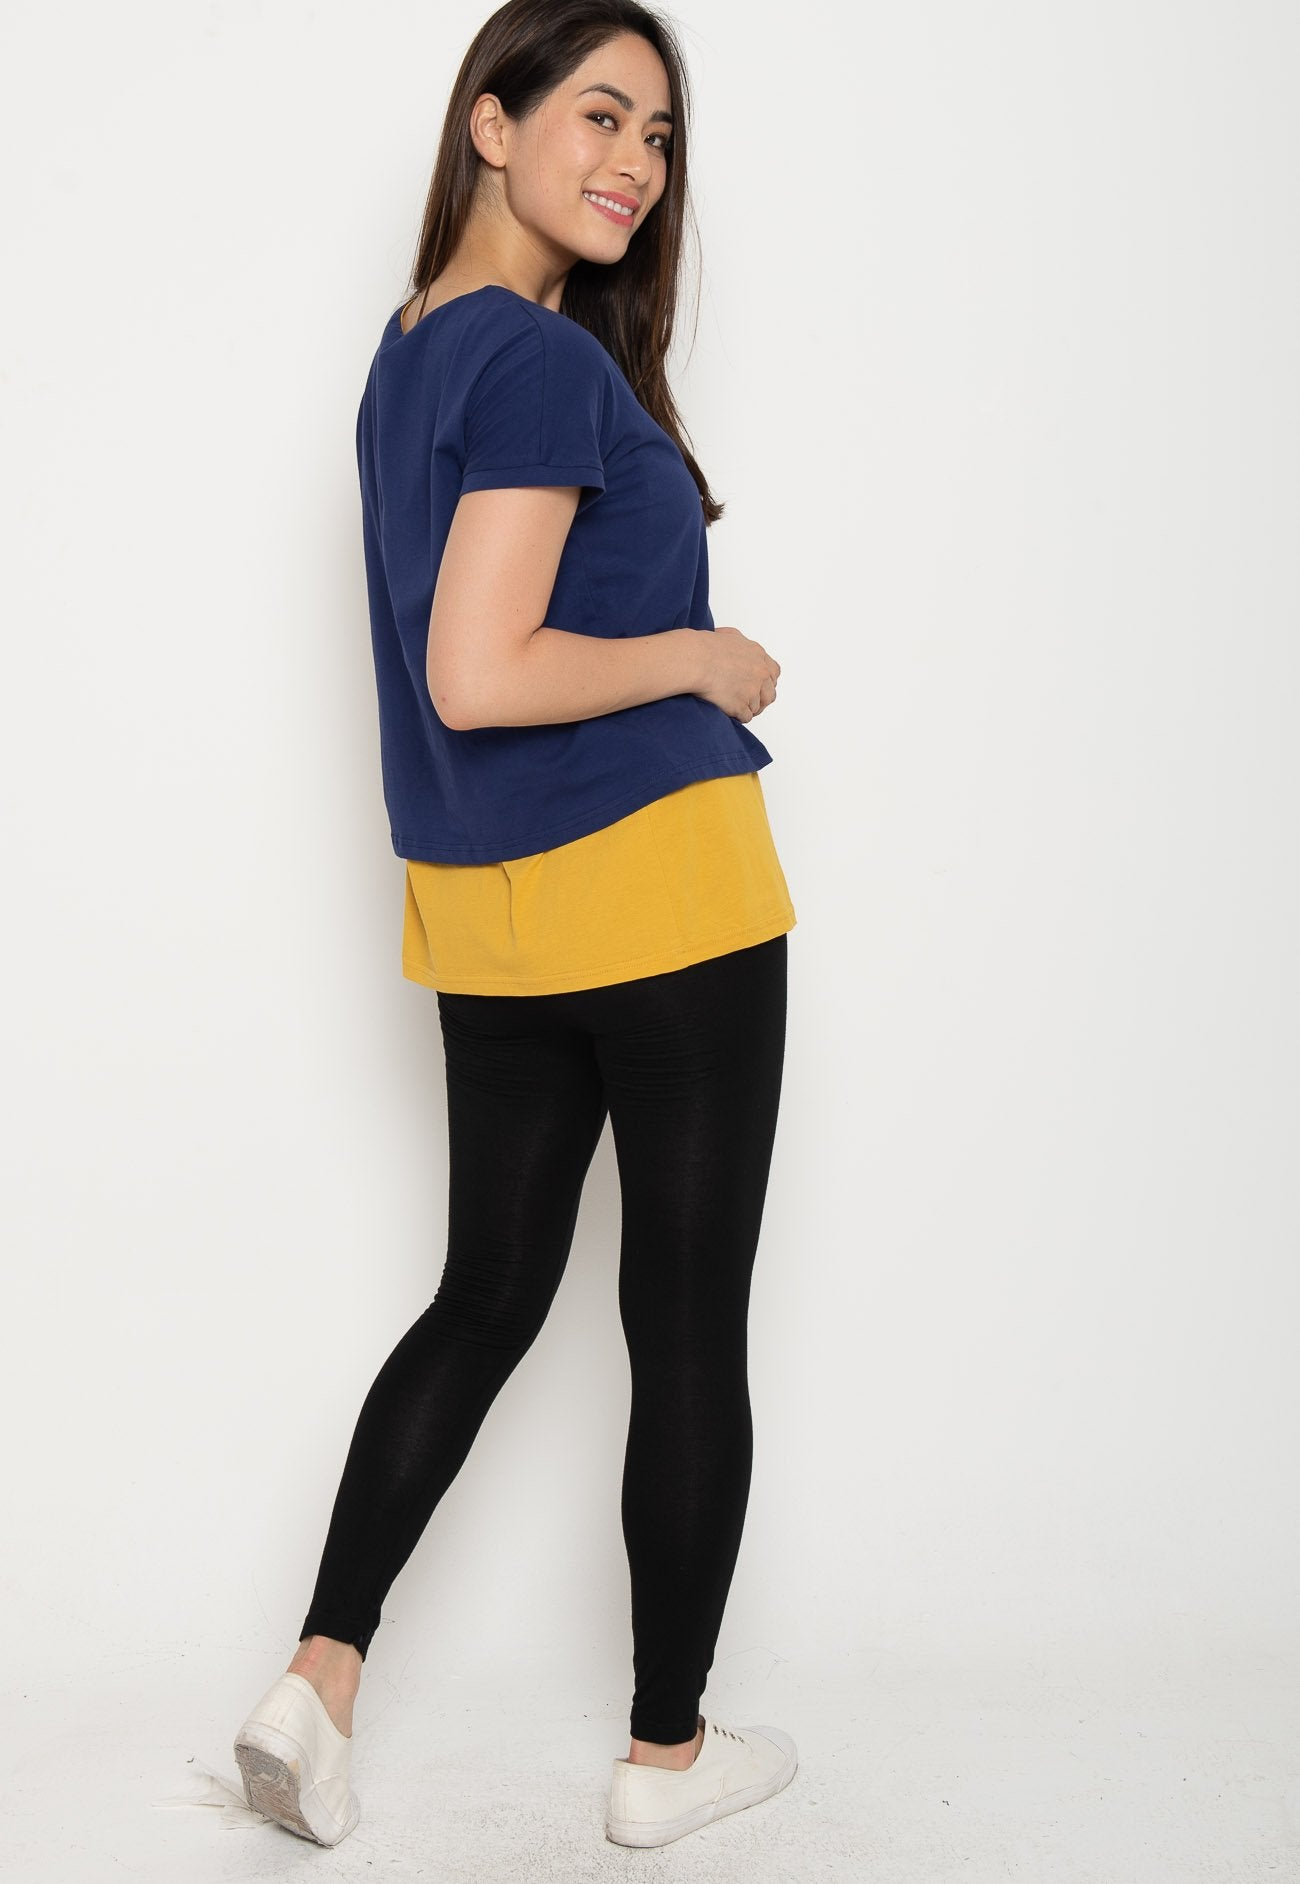 088448bb9c28b ... Two Tone Layered Nursing Top in Navy and Yellow Nursing Wear Mothercot